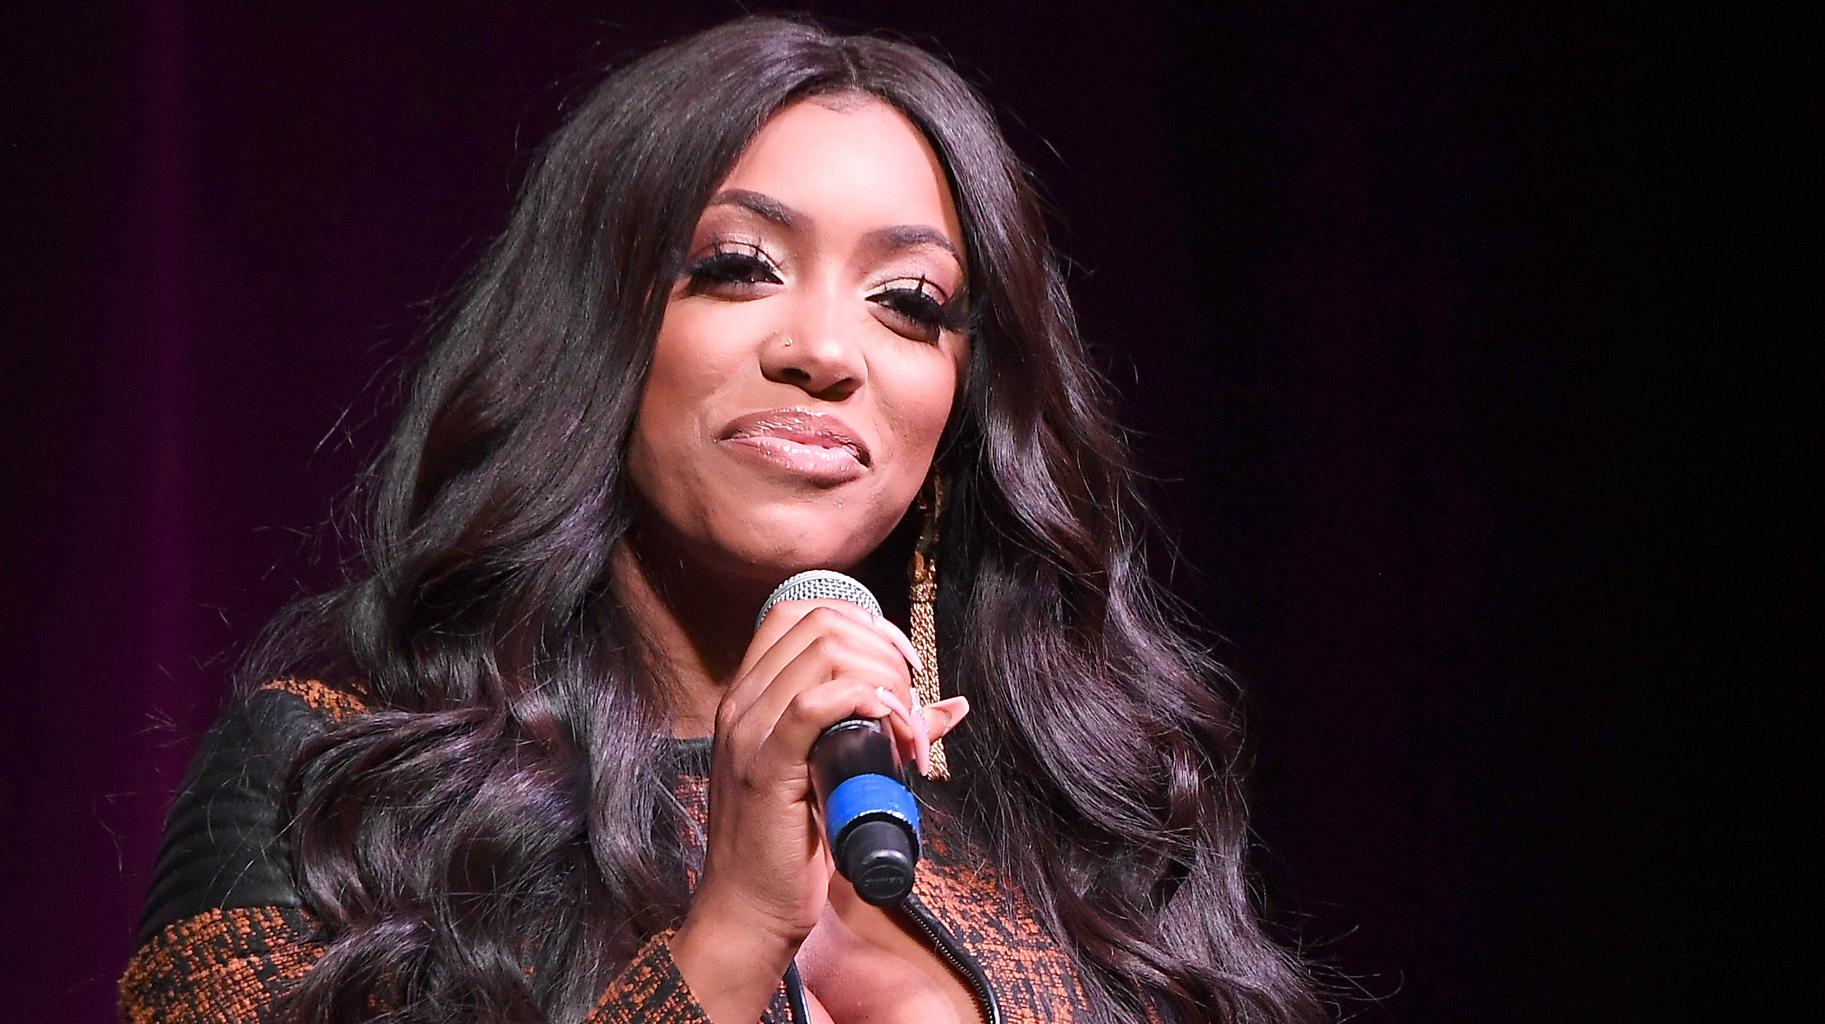 Porsha Williams Shares Gorgeous Photos From Her Christmas Celebration With Dennis McKinley And Baby Pilar Jhena